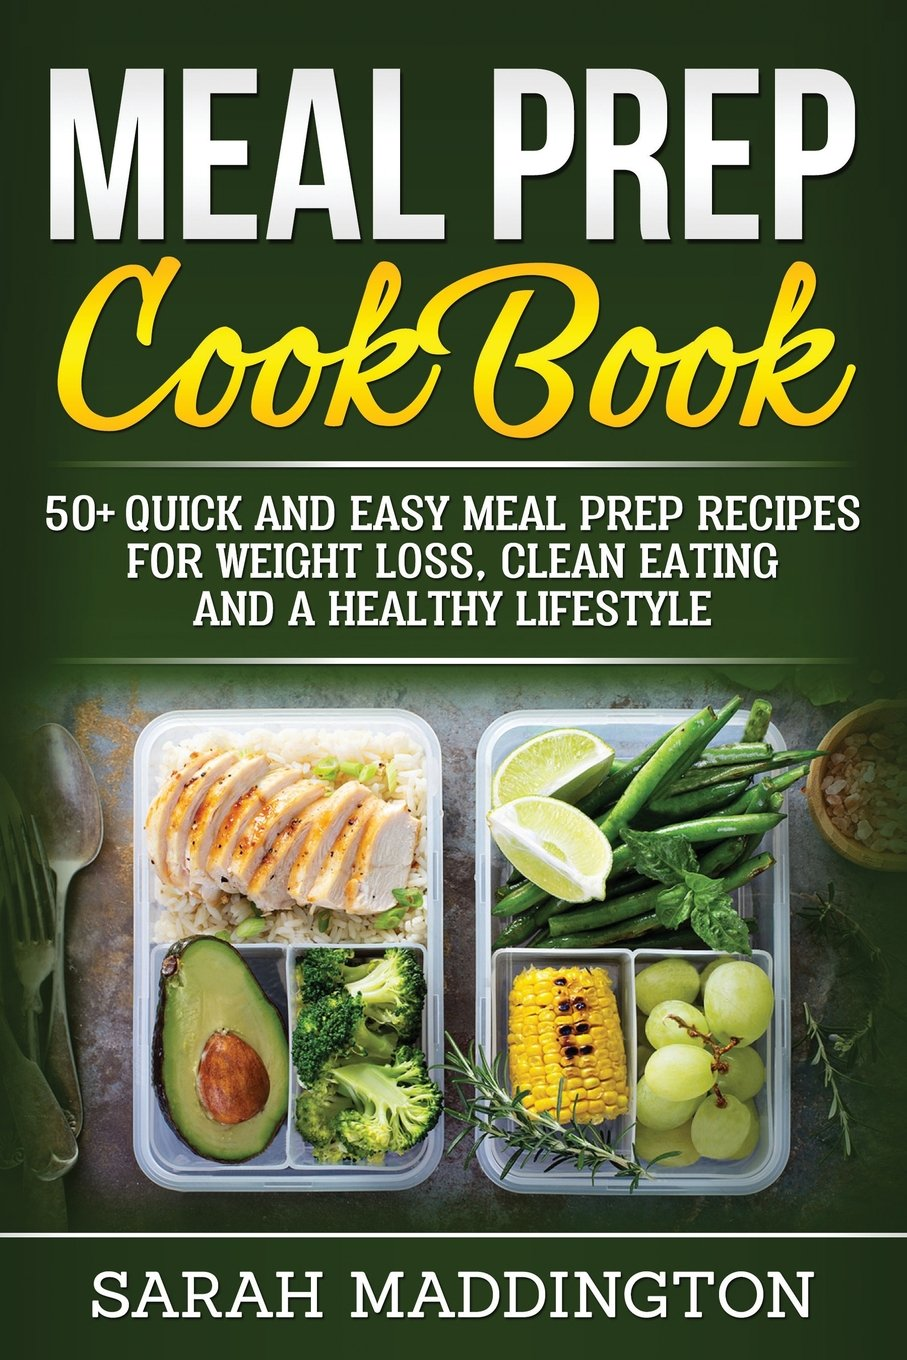 Meal Prep Cookbook: 50+ Quick and Easy Meal Prep Recipes for Weight Loss, Clean Eating and a Healthy Lifestyle. pdf epub